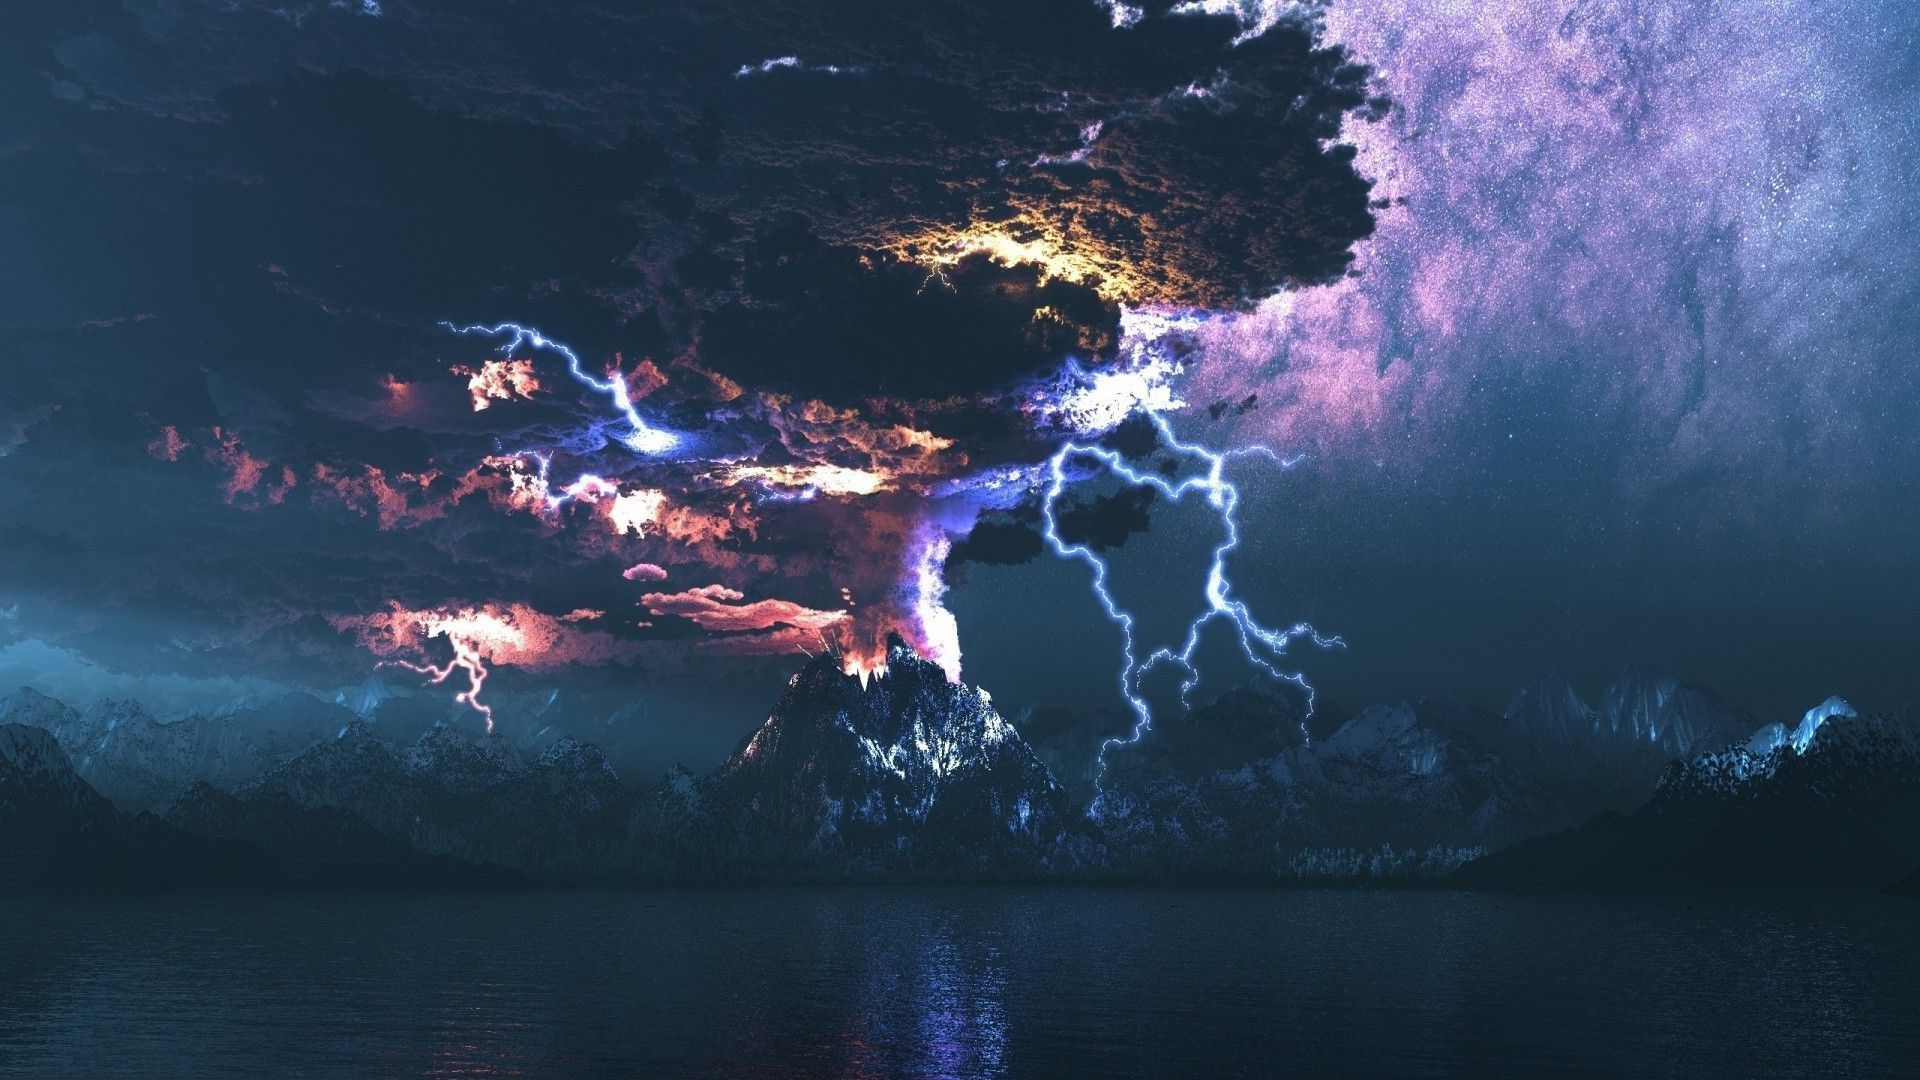 Lightning Wallpaper 1080p Volcano Wallpaper Volcano Lightning Volcano Photos